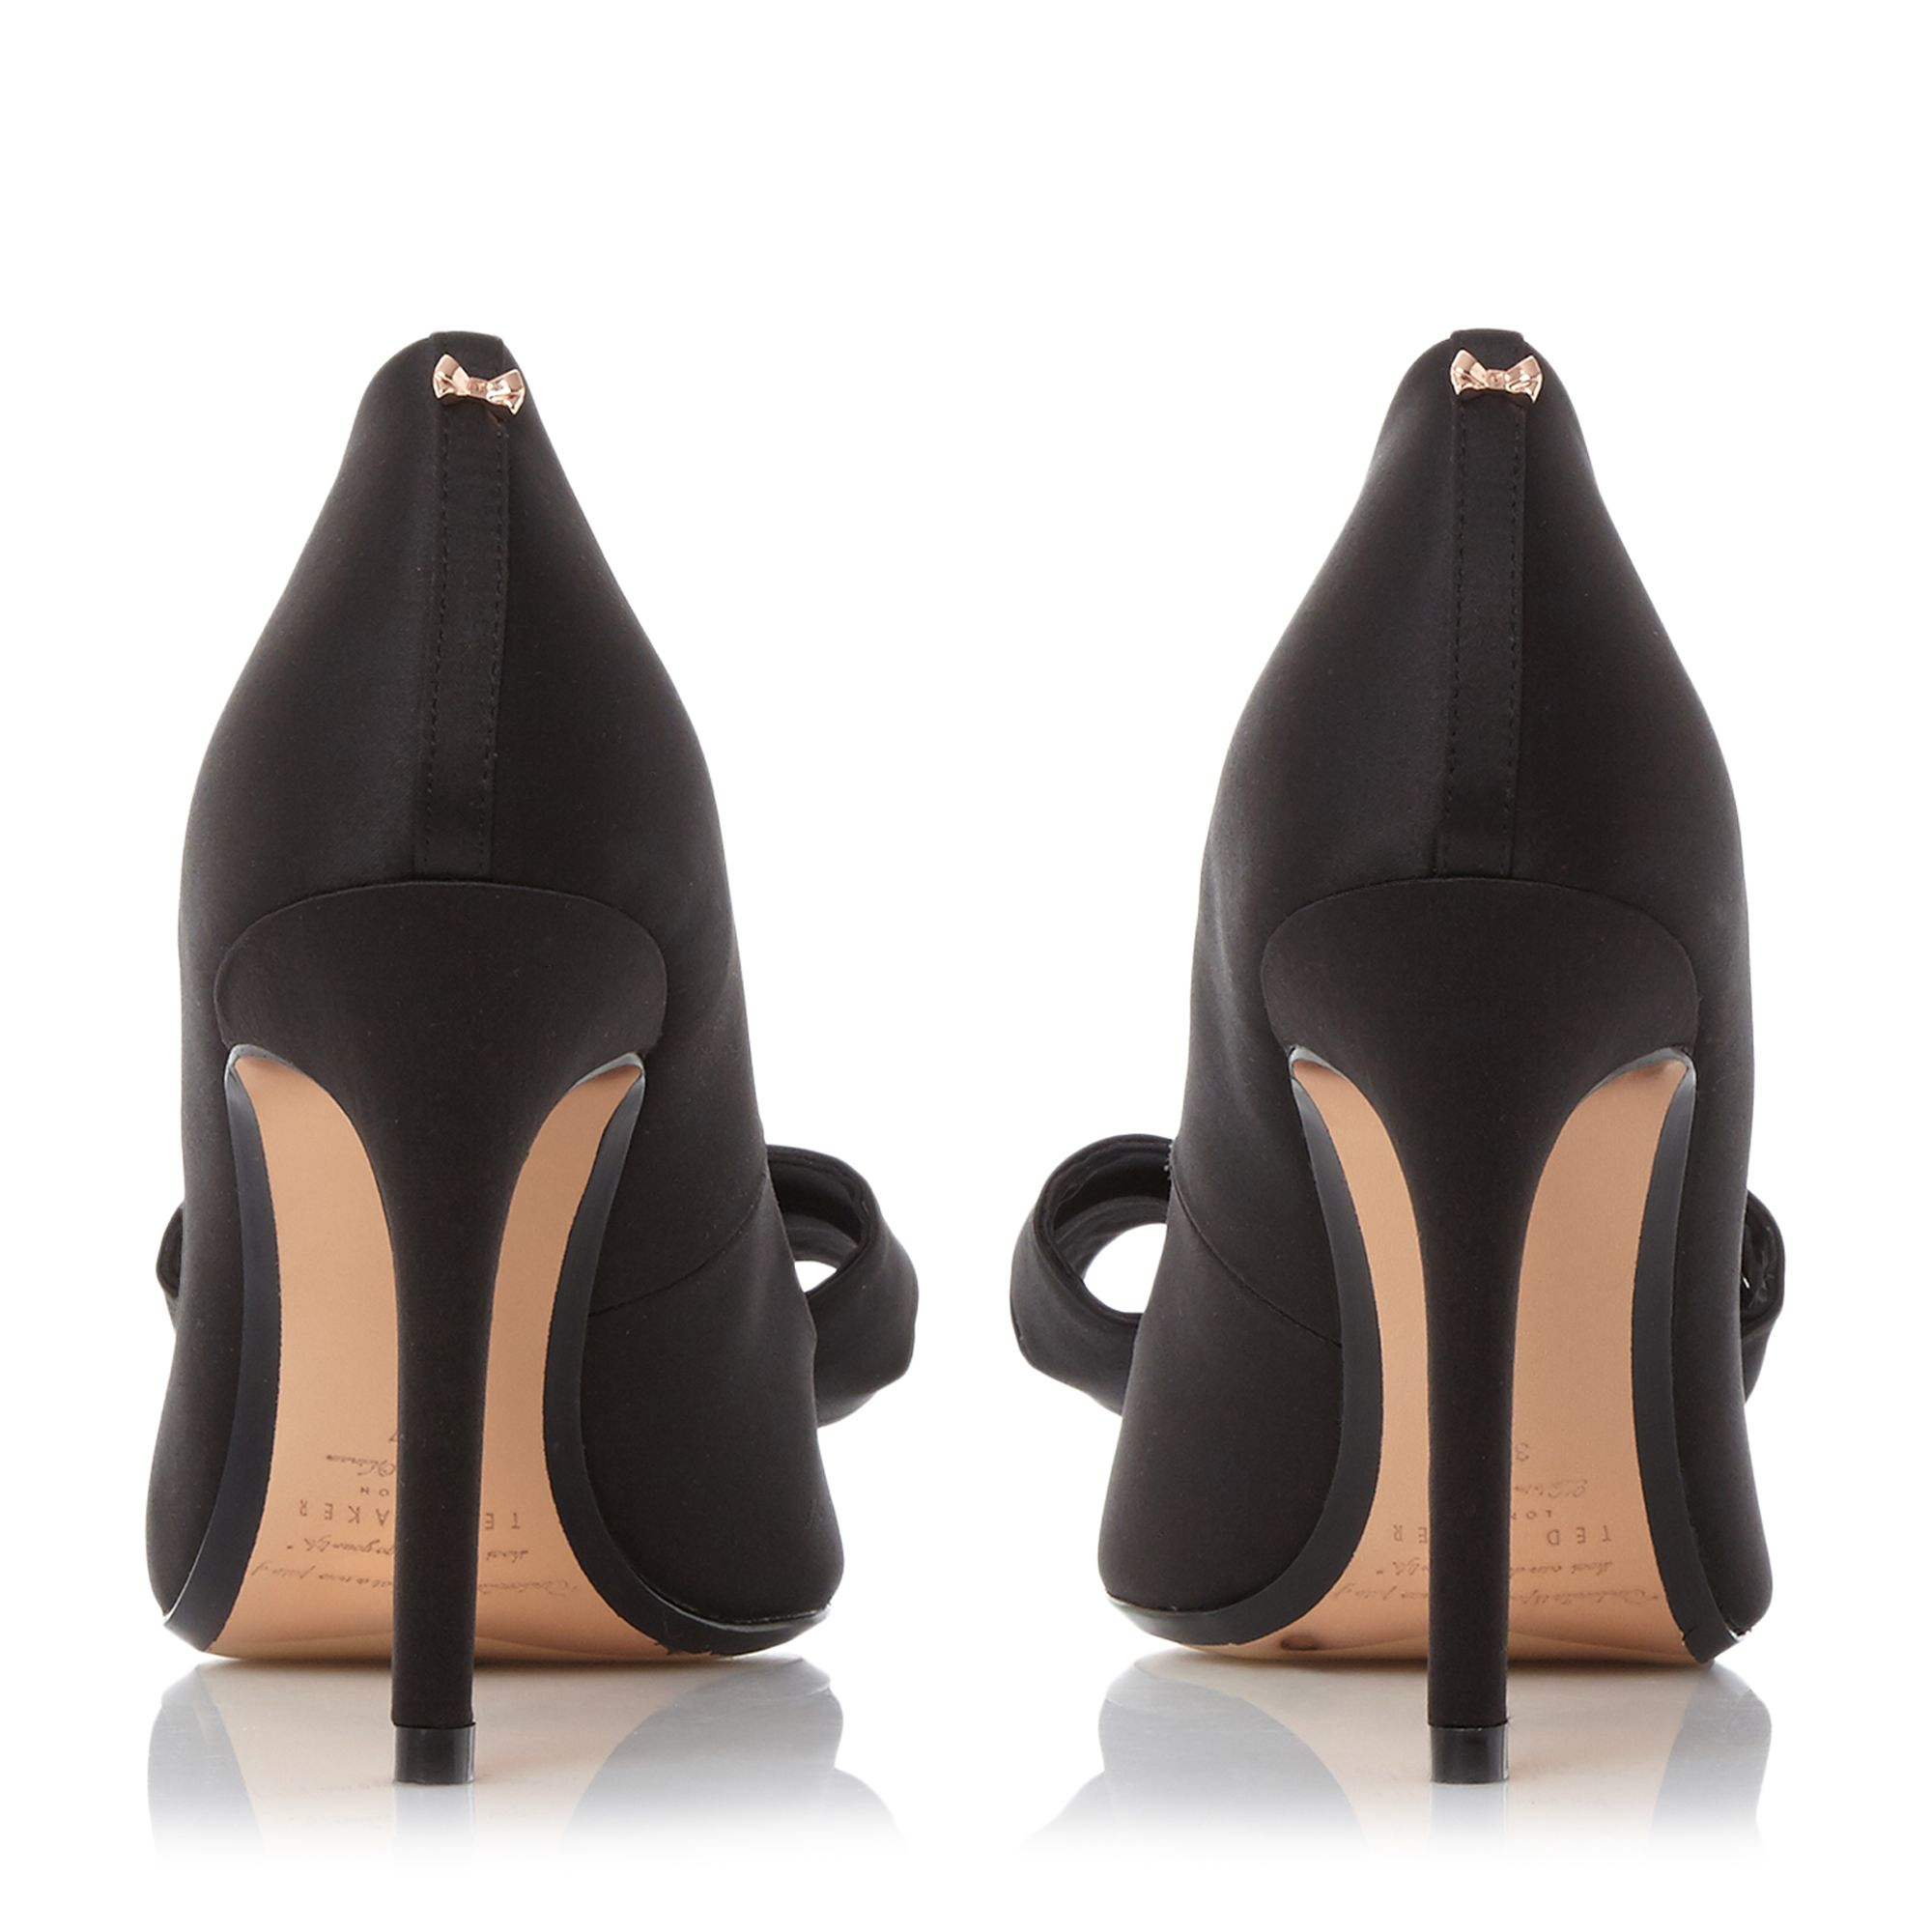 cb880983fa73c1 Ted Baker Ichlibi  Satin Bow Court Shoes in Black - Lyst